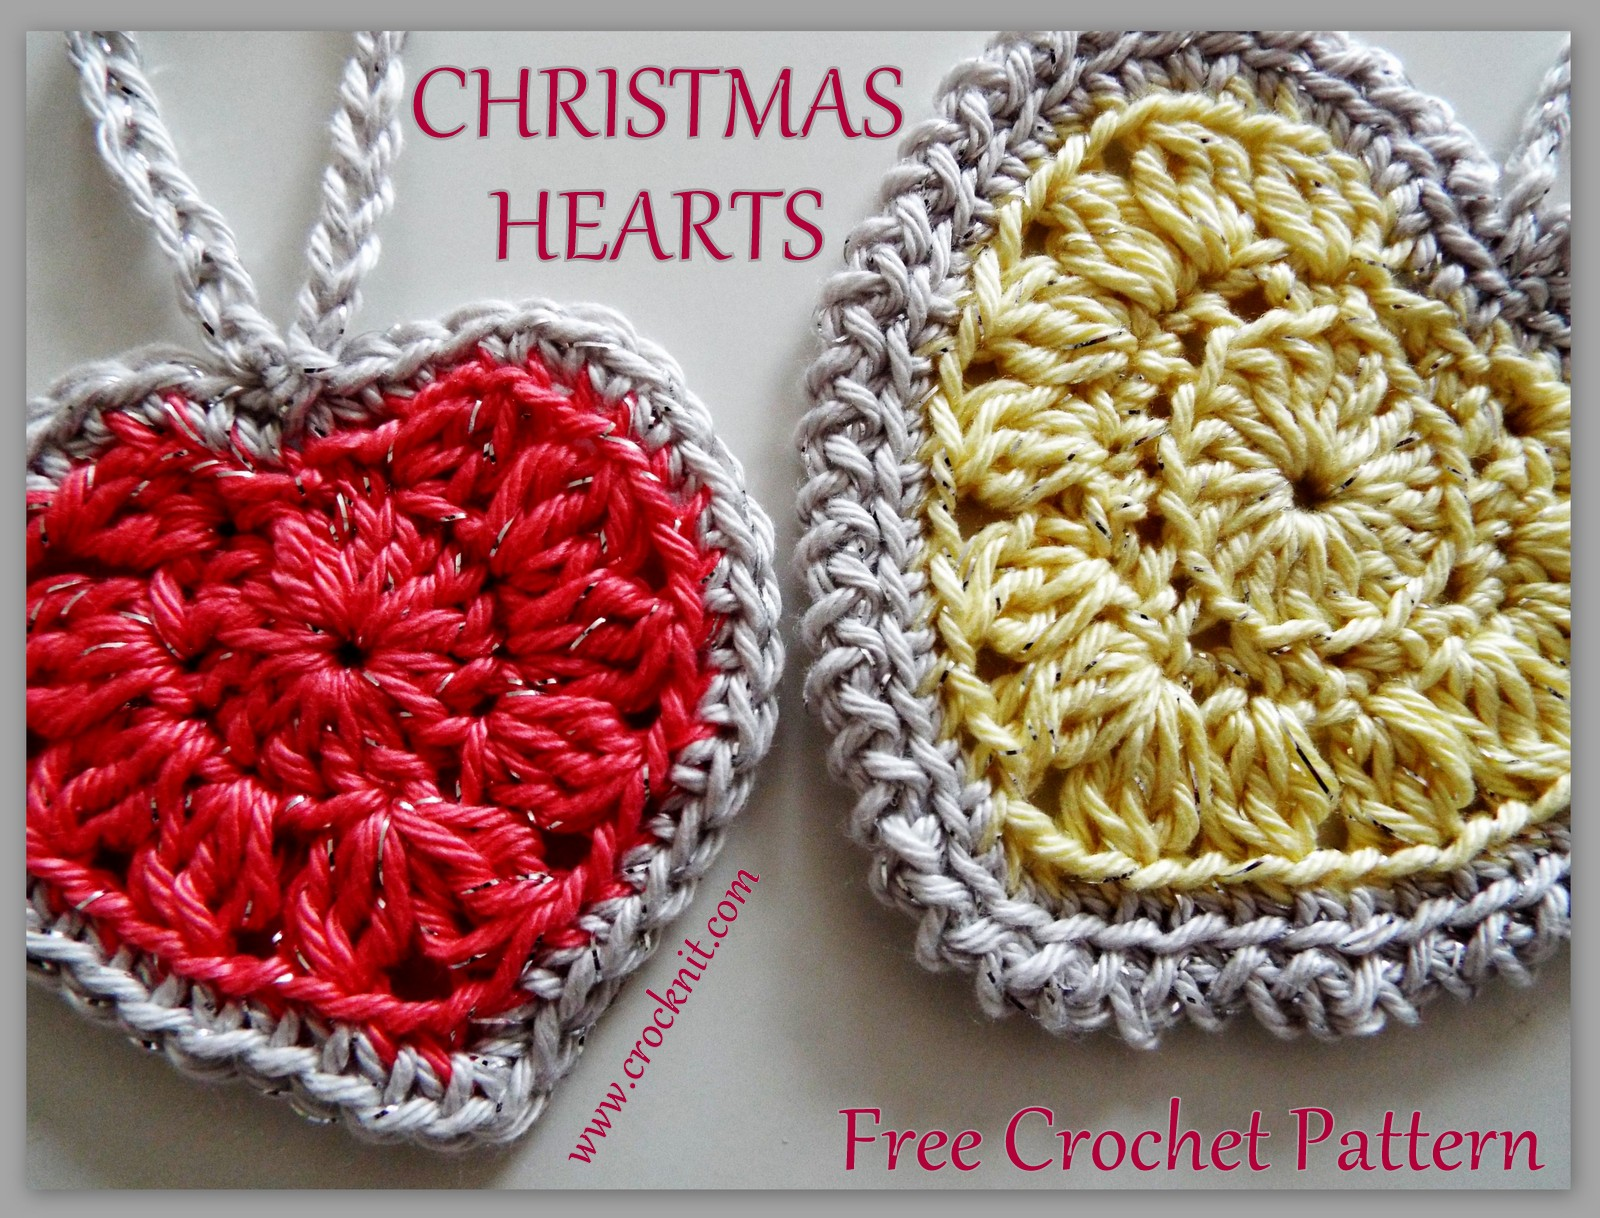 MICROCKNIT CREATIONS: Christmas Hearts Free Crochet Pattern